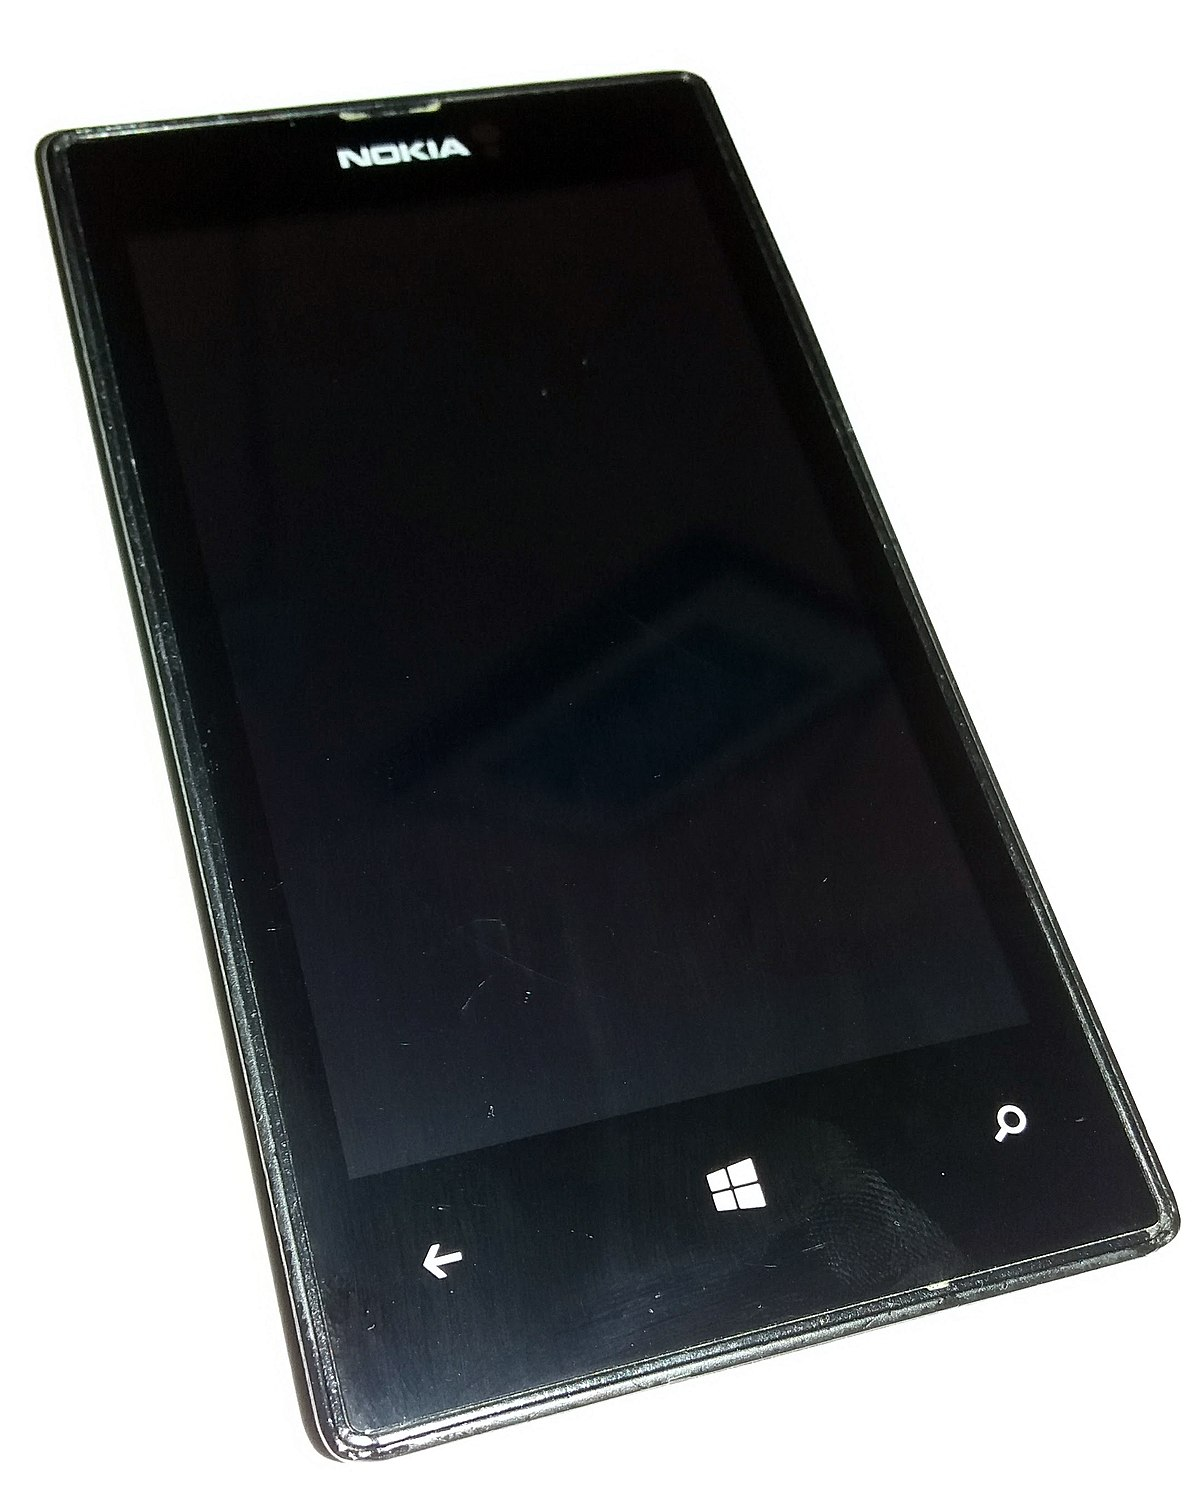 Lumia 521 software update - Lumia 521 Software Update 51